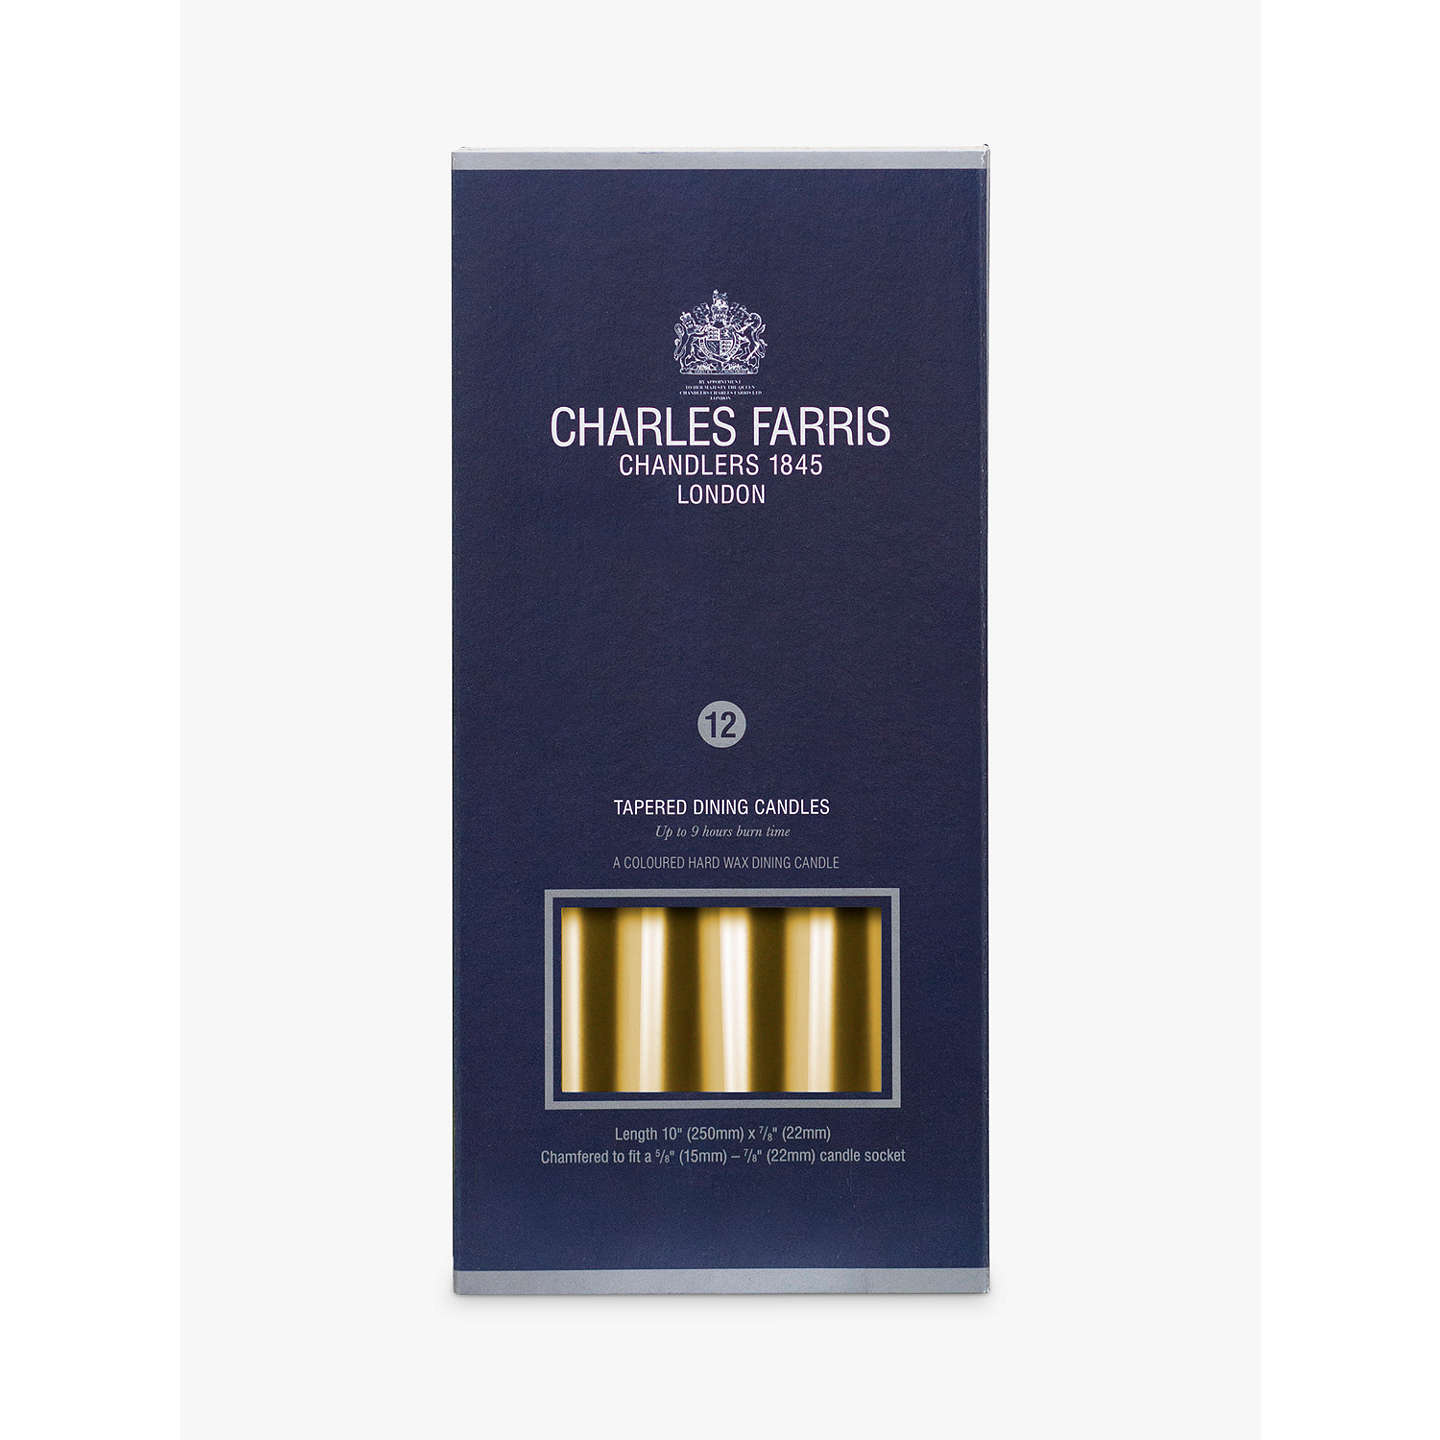 BuyCharles Farris Tapered Dinner Candles, Pack of 12, Gold Online at johnlewis.com